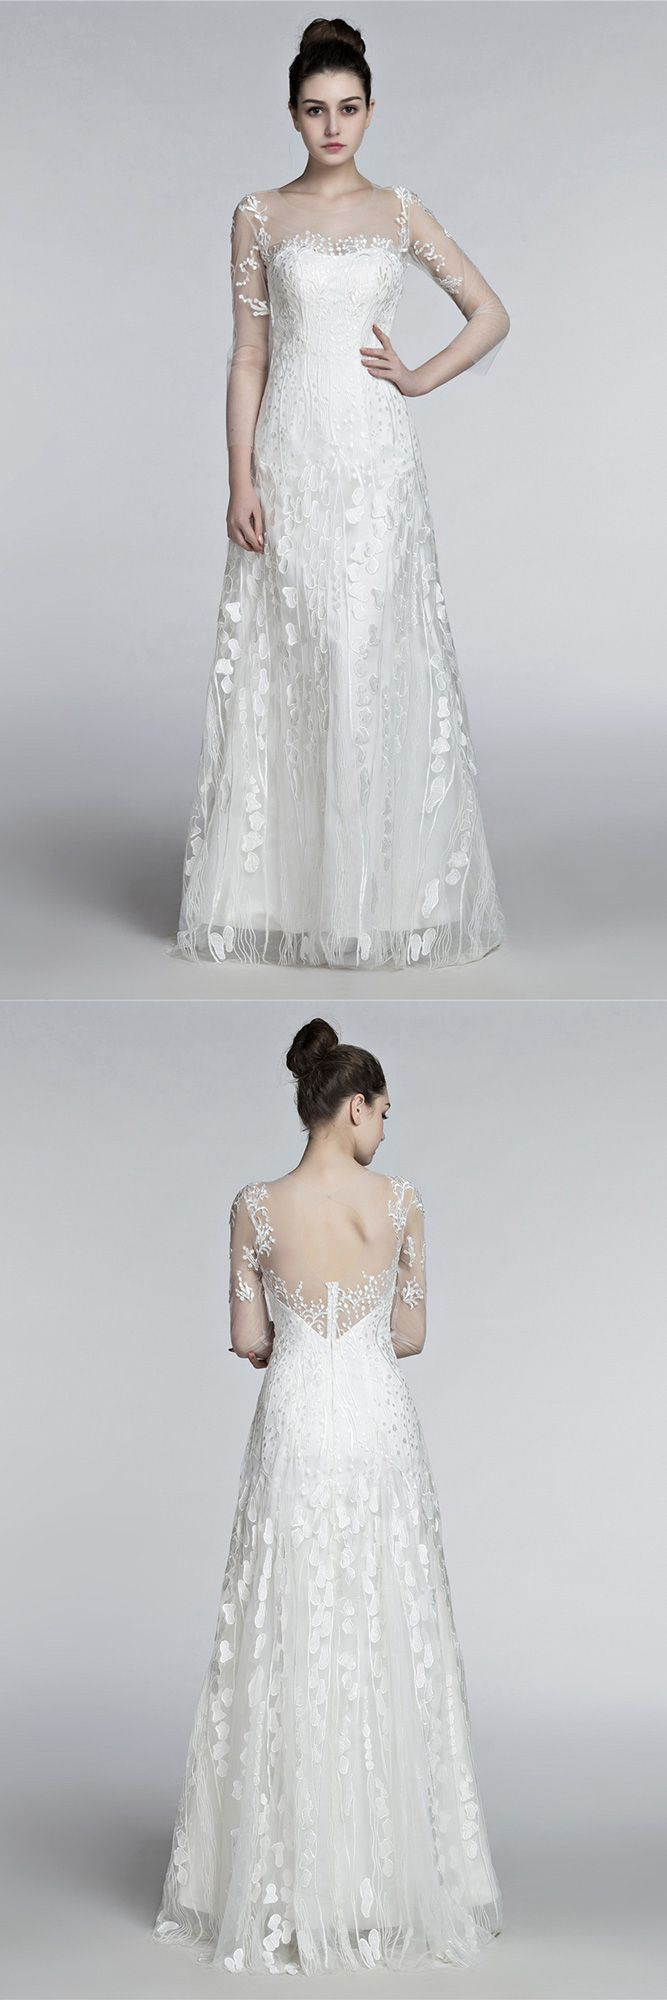 Only beach wedding dresses romantic flowing lace beach